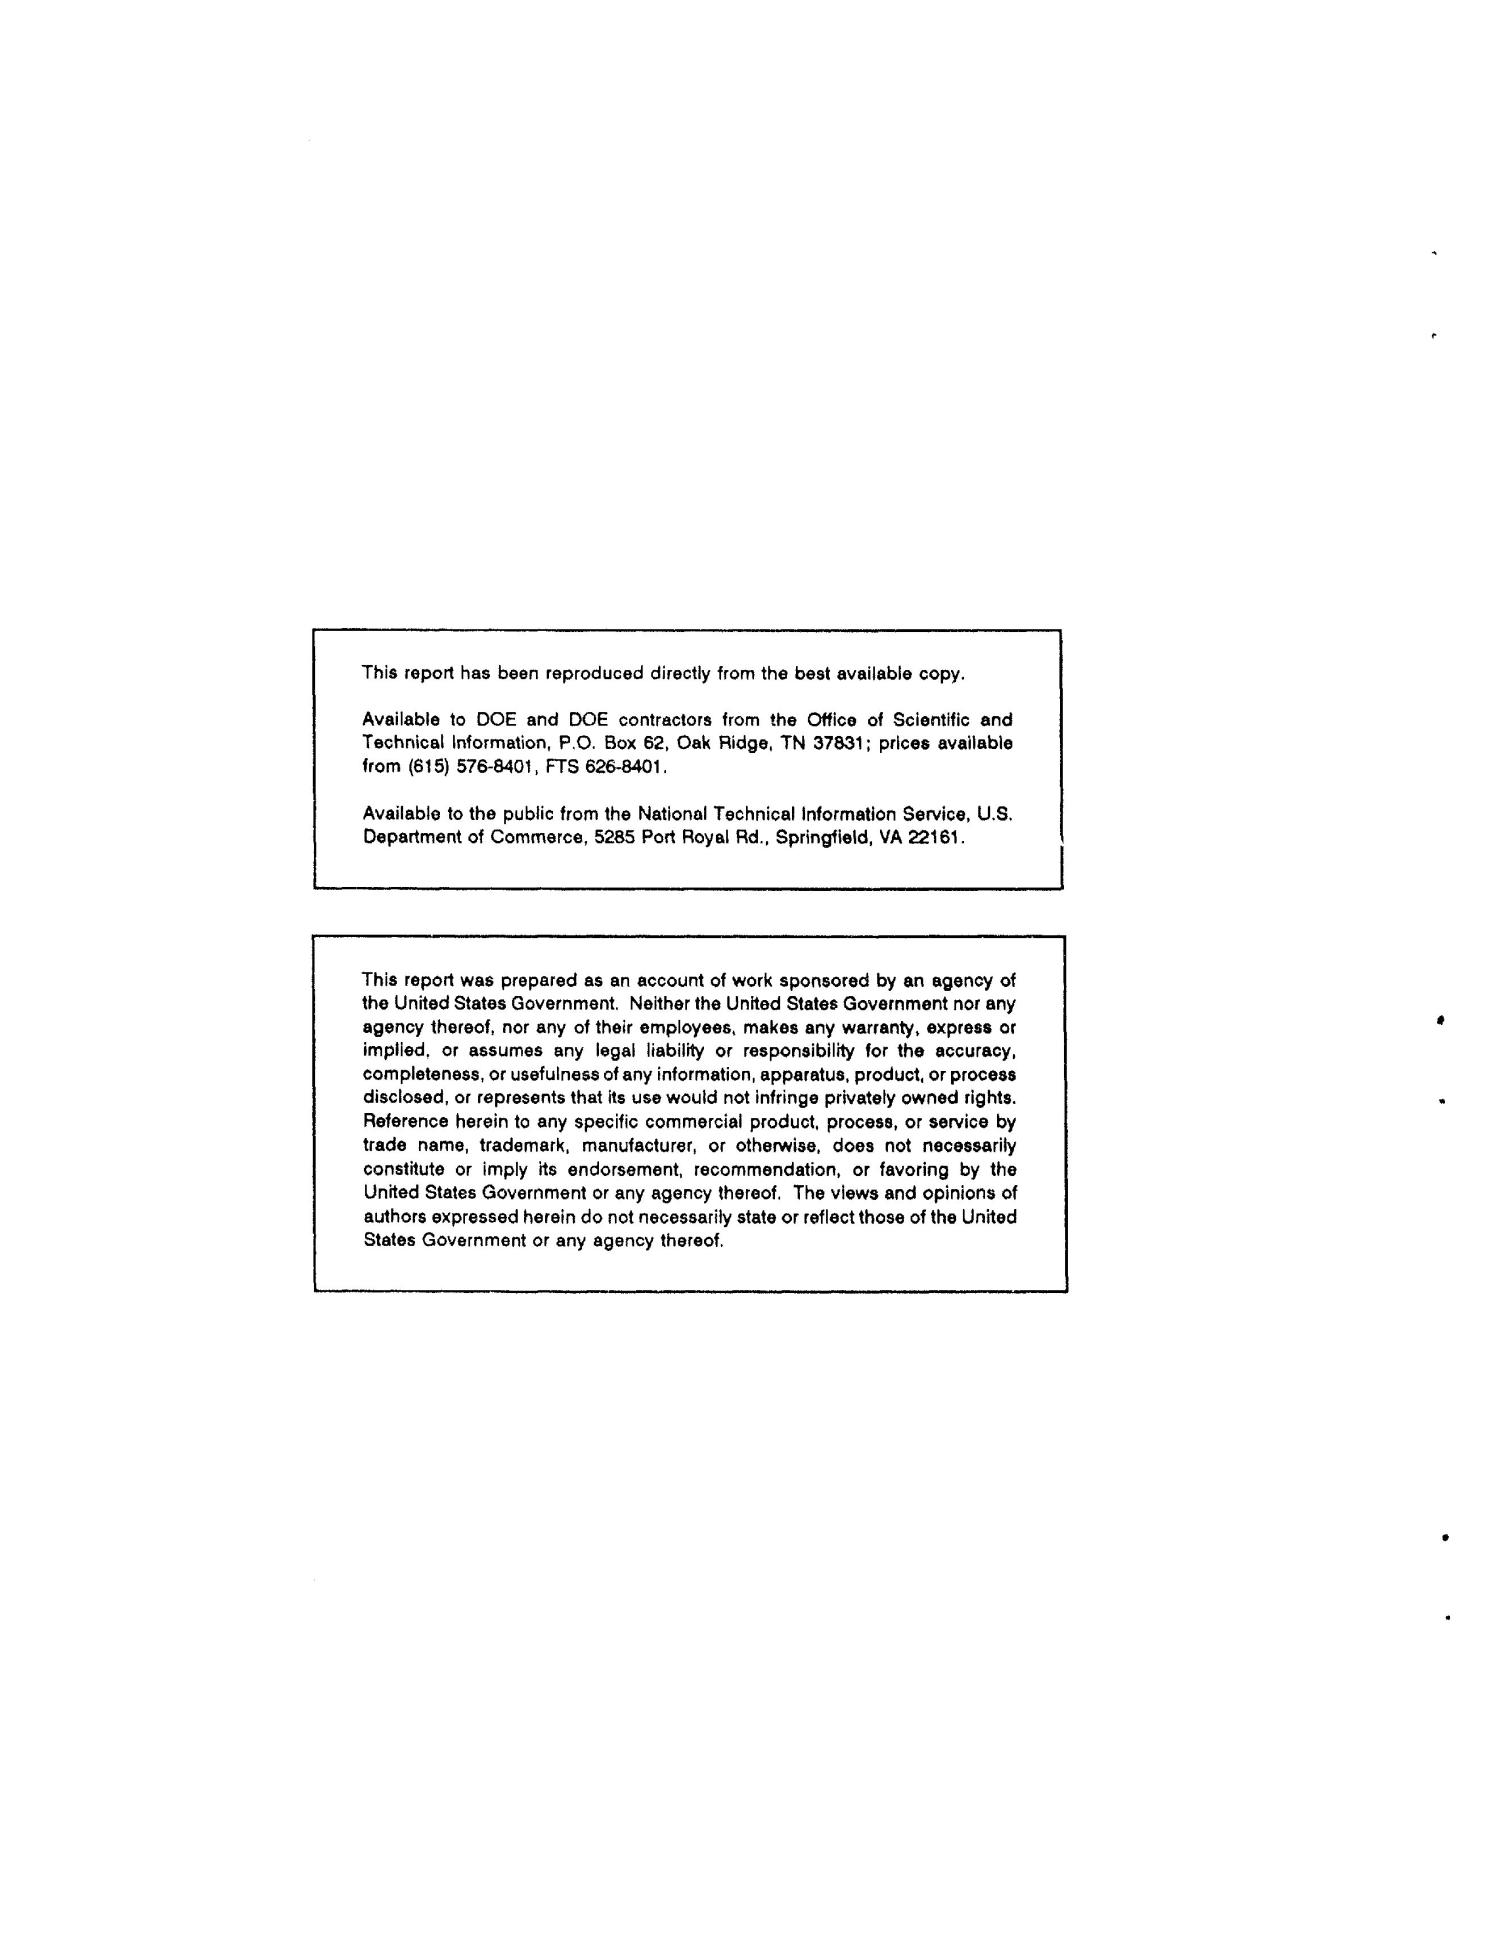 Nuclear medicine program progress report for quarter ending March 31, 1994                                                                                                      [Sequence #]: 4 of 19